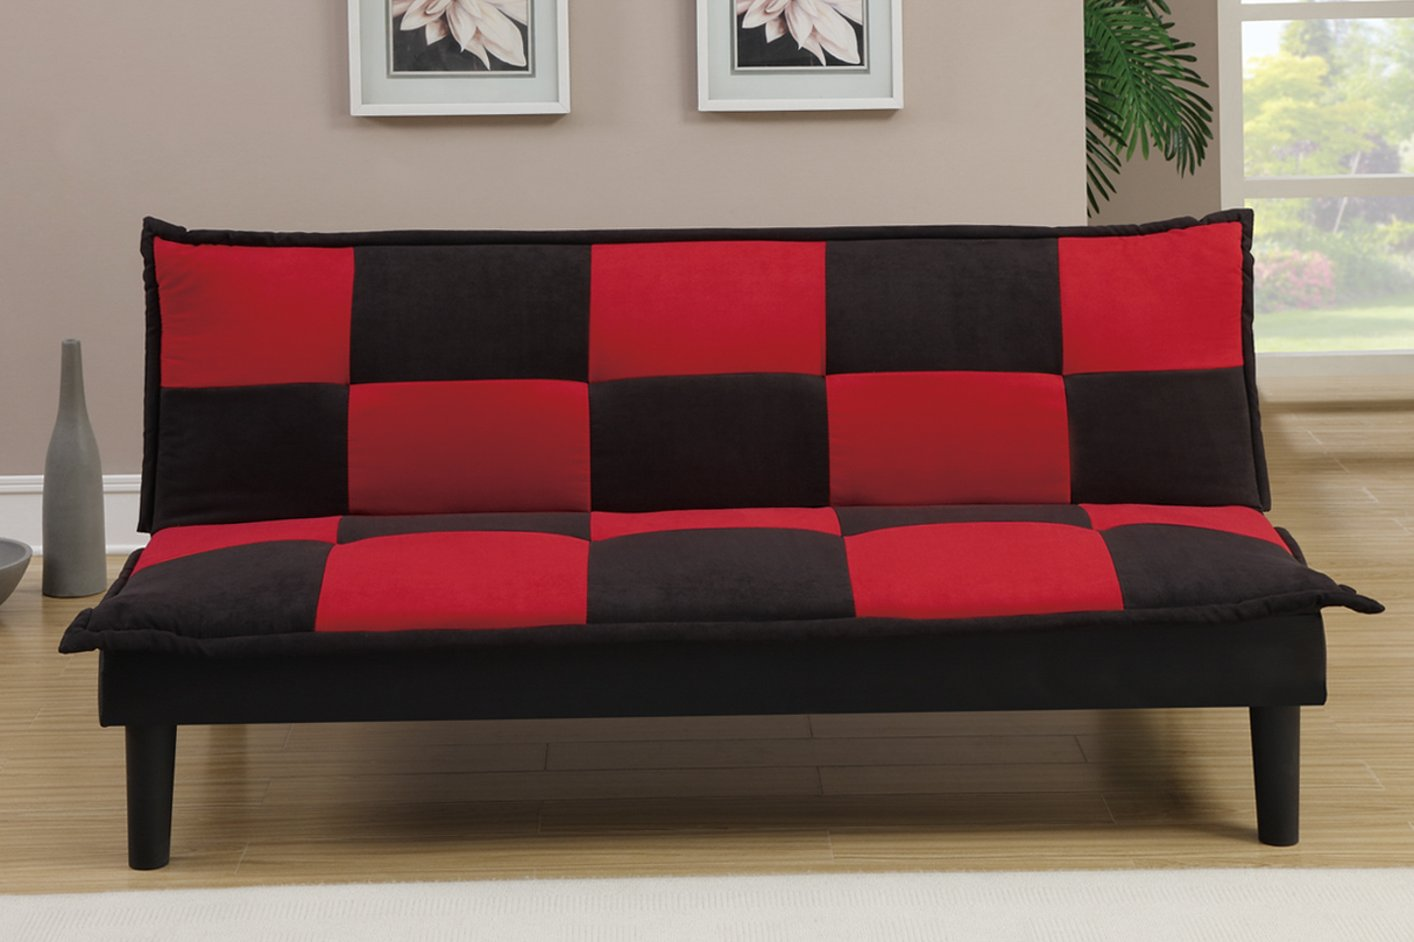 Red Fabric Twin Size Sofa Bed - Steal-A-Sofa Furniture